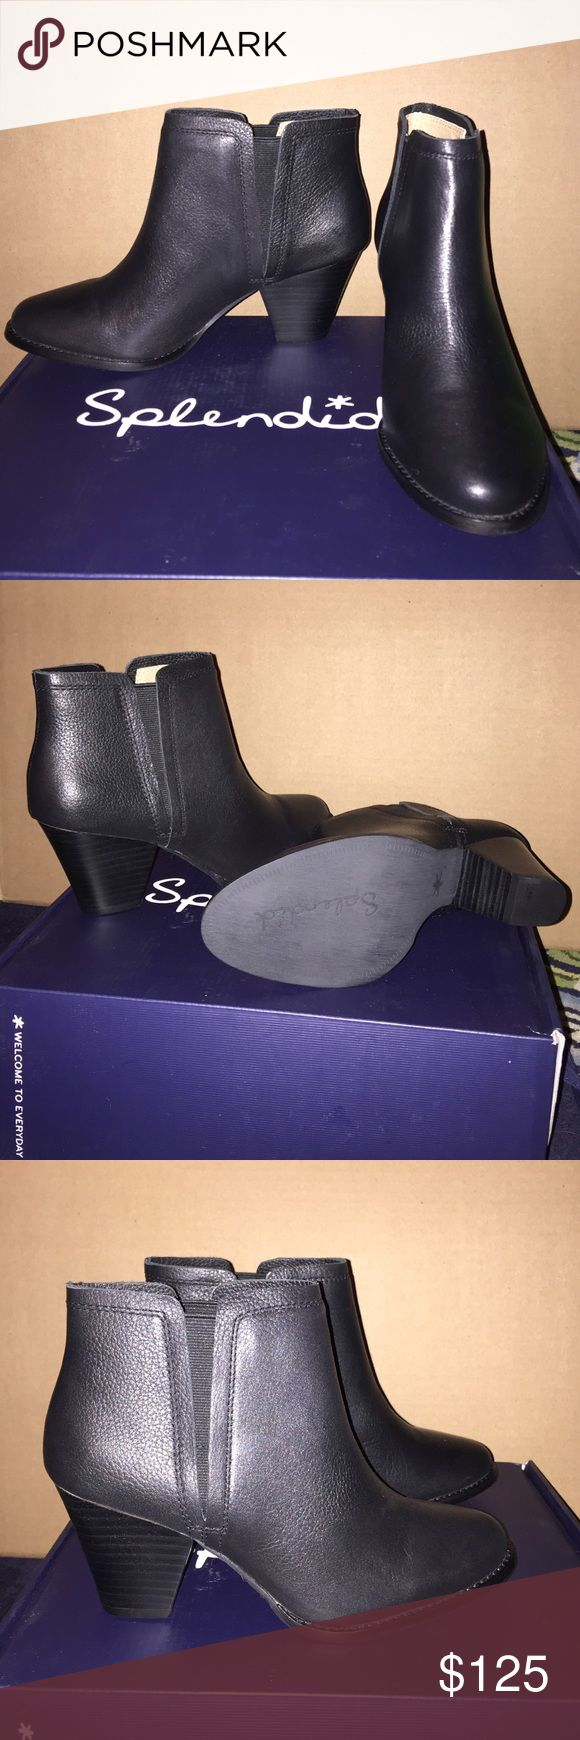 """Splendid Slip-on Bootie This is brand new, has not been worn, padded footbed, 3"""" heel, pebbled leather construction. Comes with box. Price is now negotiable. Splendid Shoes Ankle Boots & Booties"""